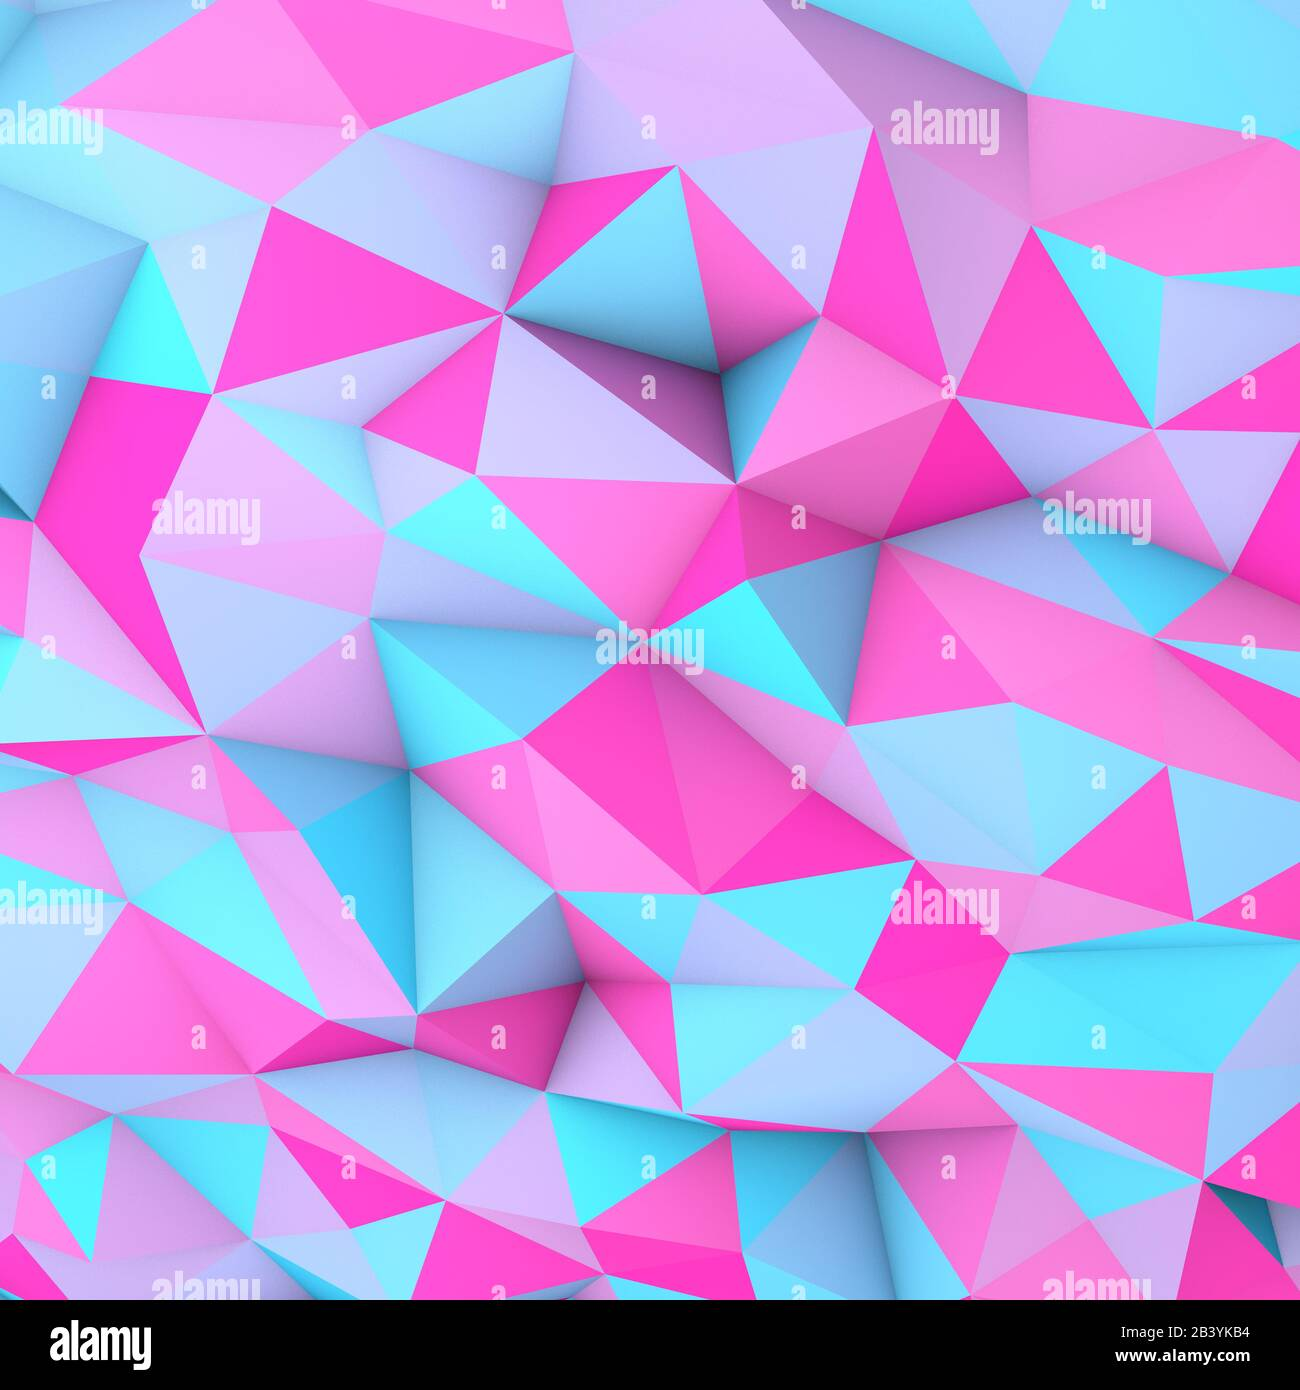 3d Illustration Of A Low Poly Wallpaper Or Background In Pastel Colors Stock Photo Alamy